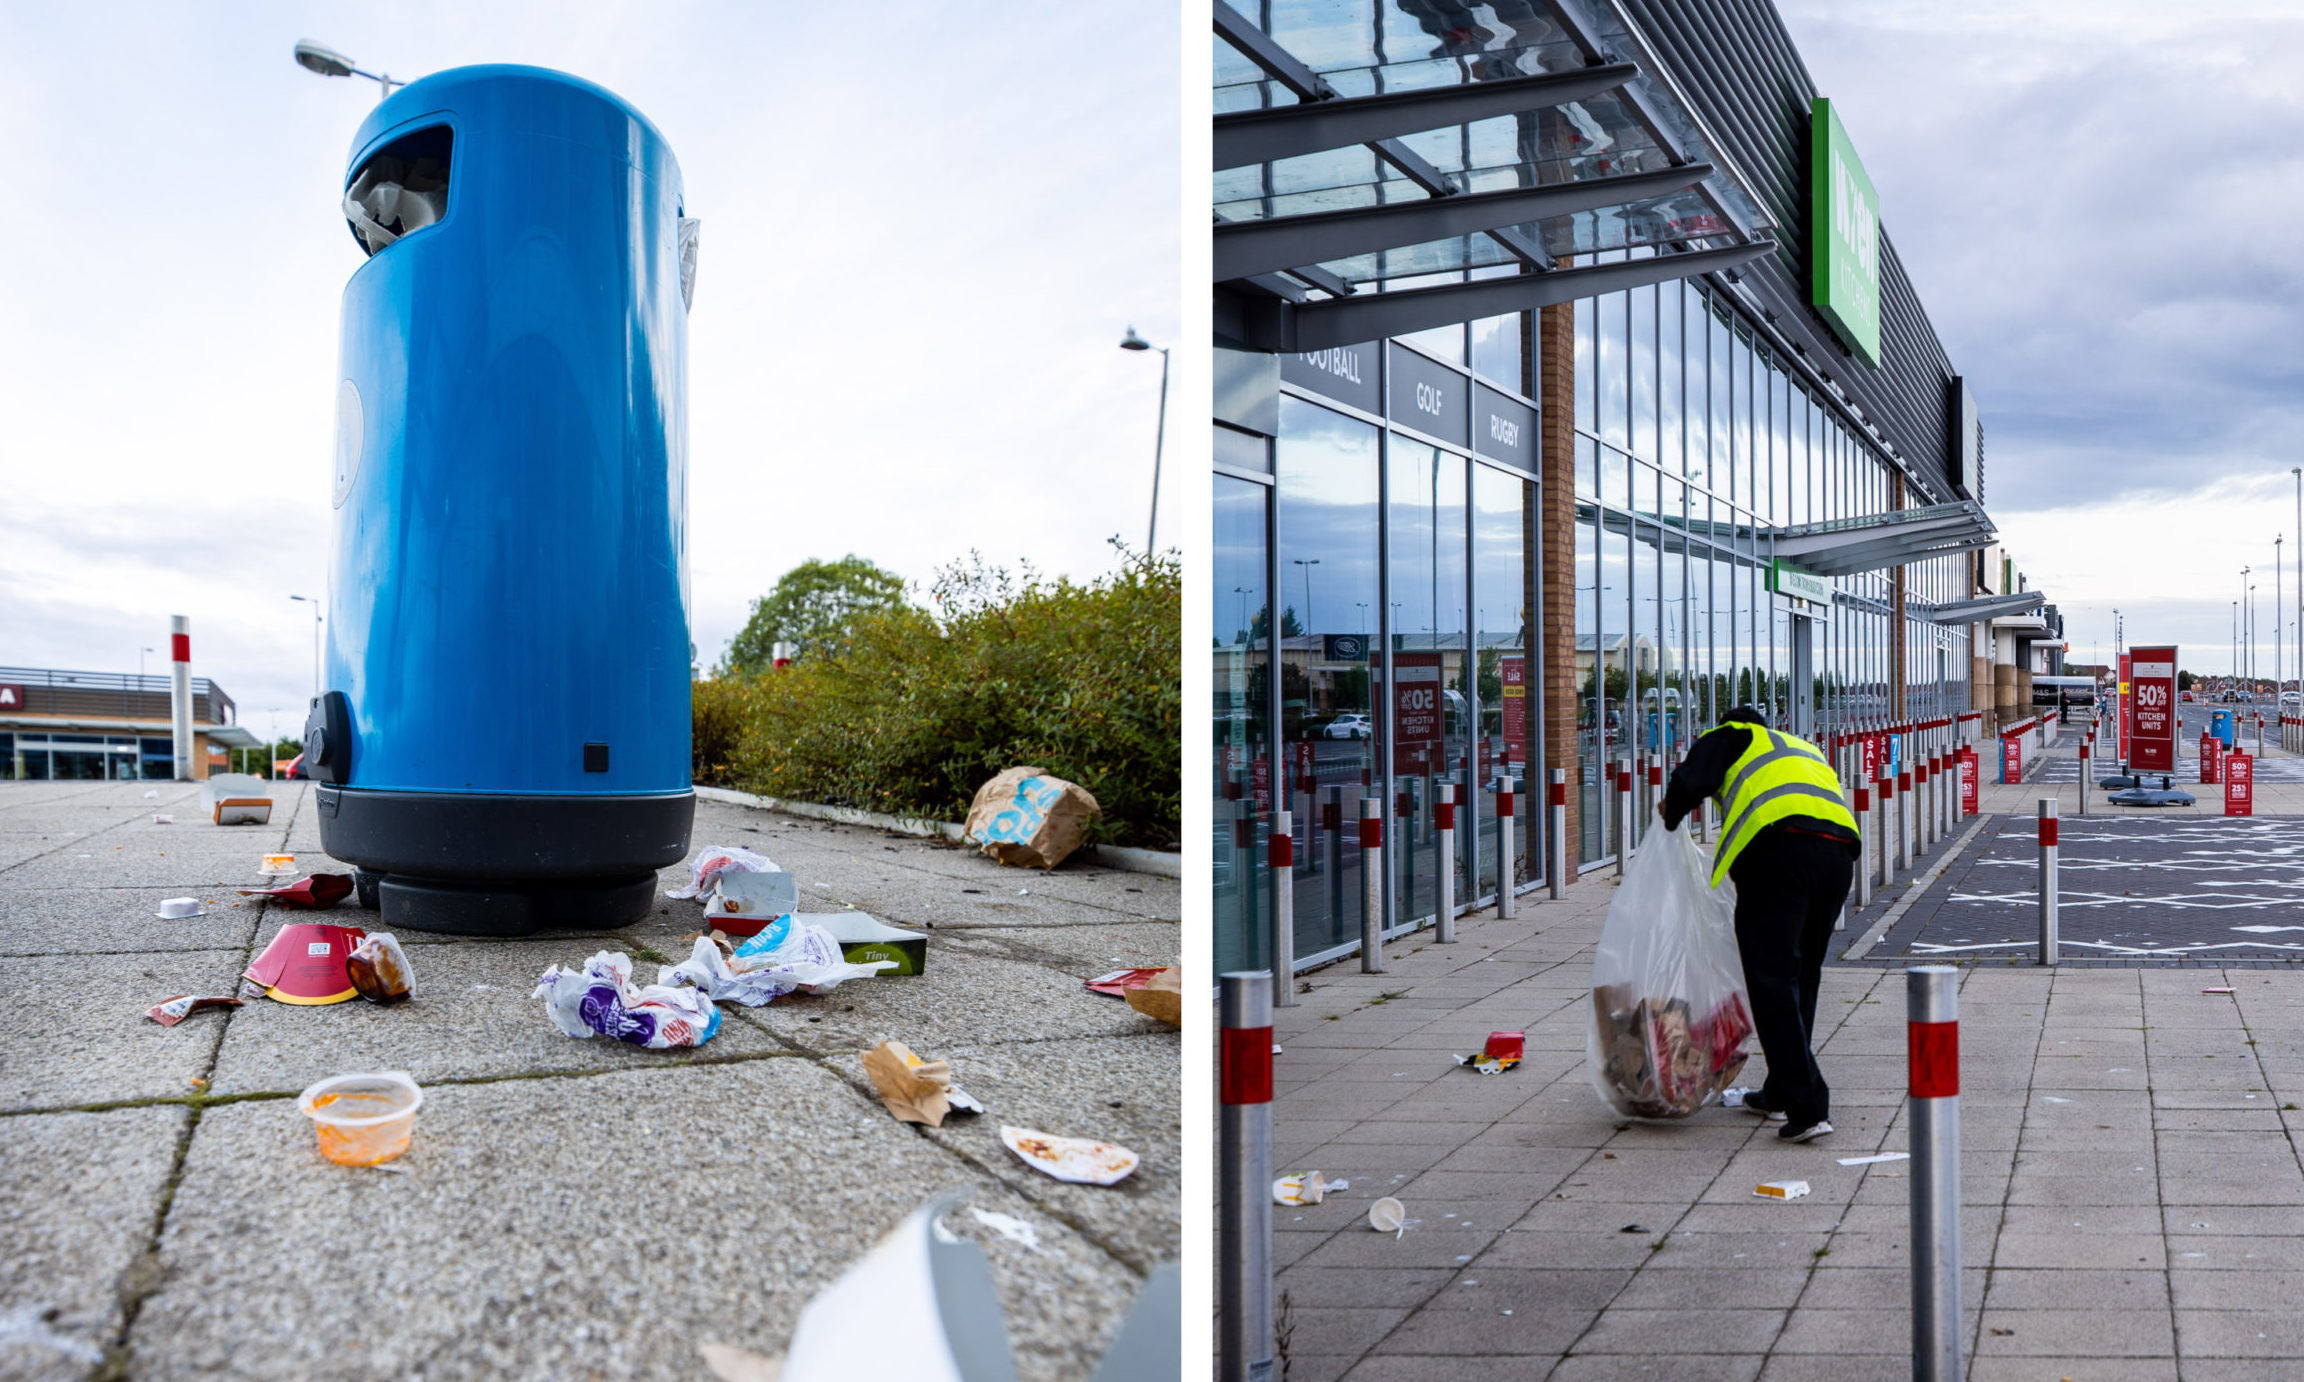 Rubbish bins were overflowing after the McDonald's reopened at Kirkcaldy Retail Park.